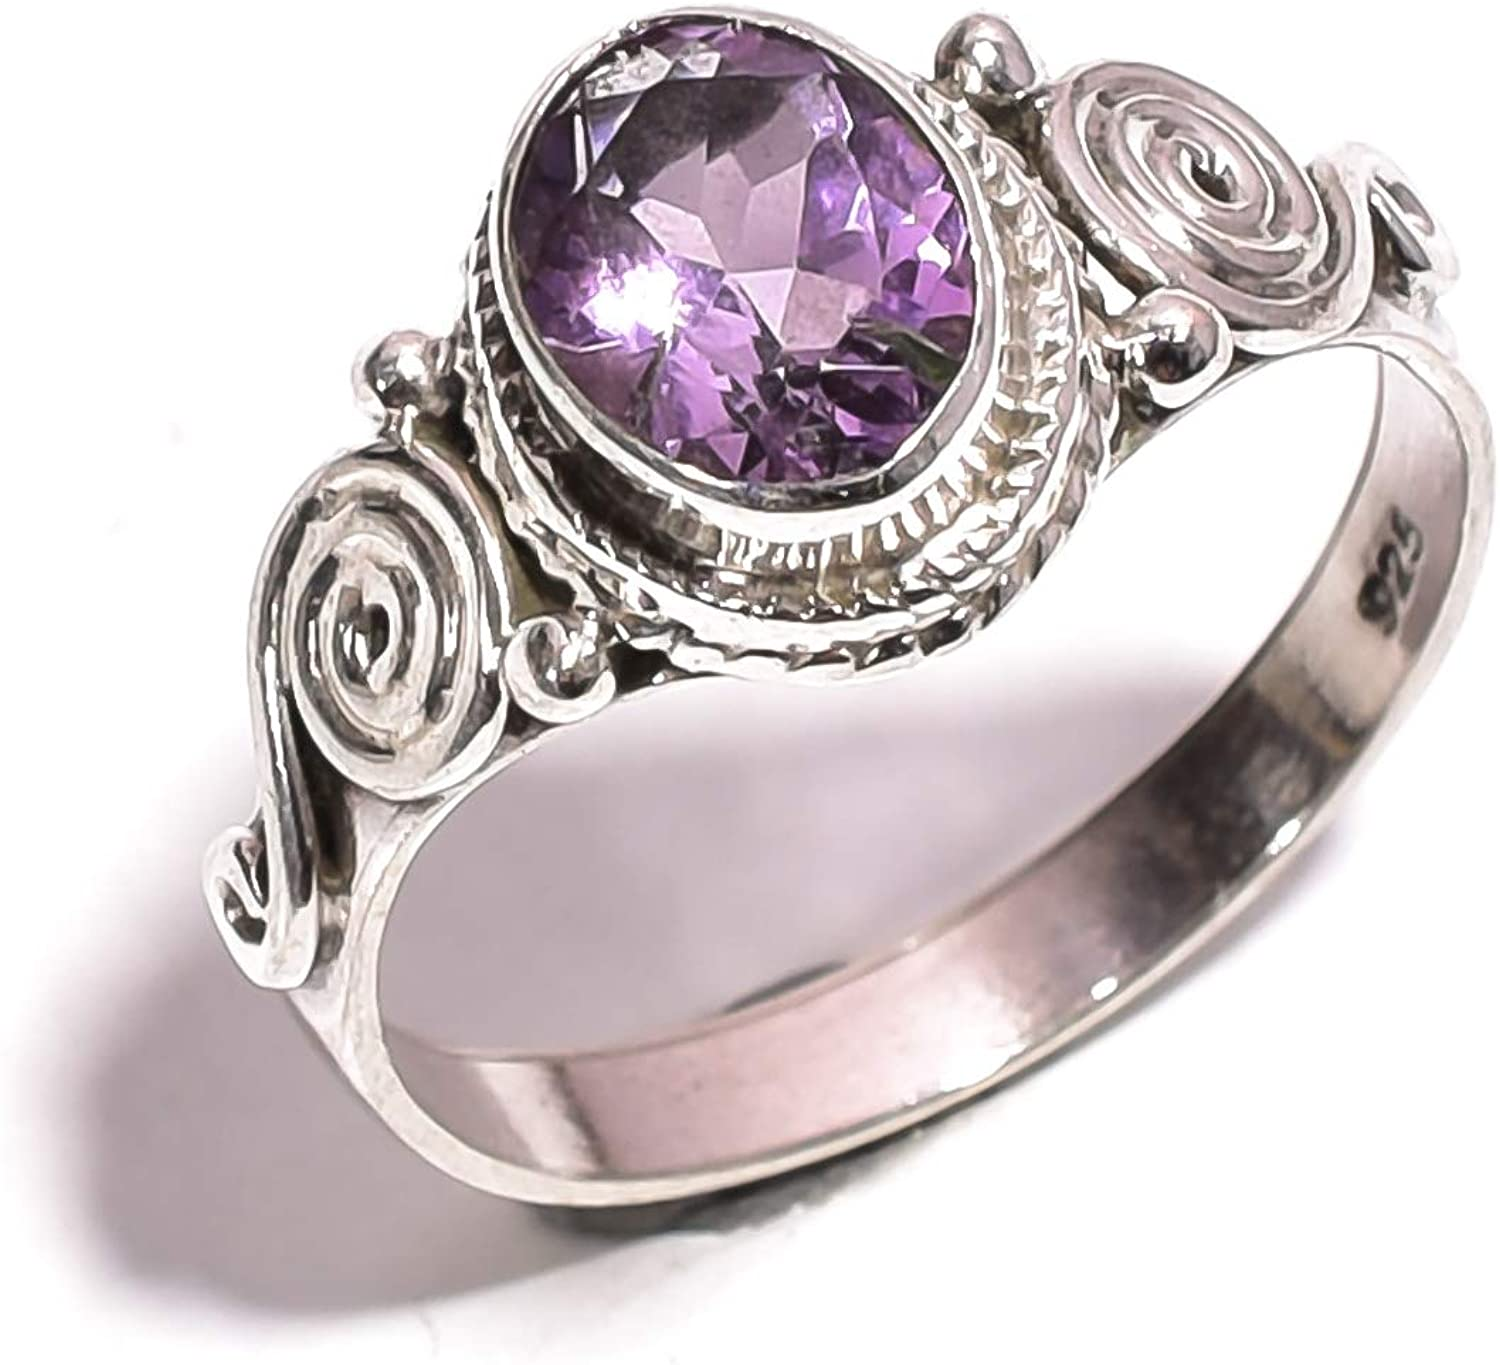 Mughal gems & jewellery 925 Sterling Silver Ring Natural Amethyst Gemstone Fine Jewelry Ring for Women & Girls Size 7.75 U.S (ZR-755